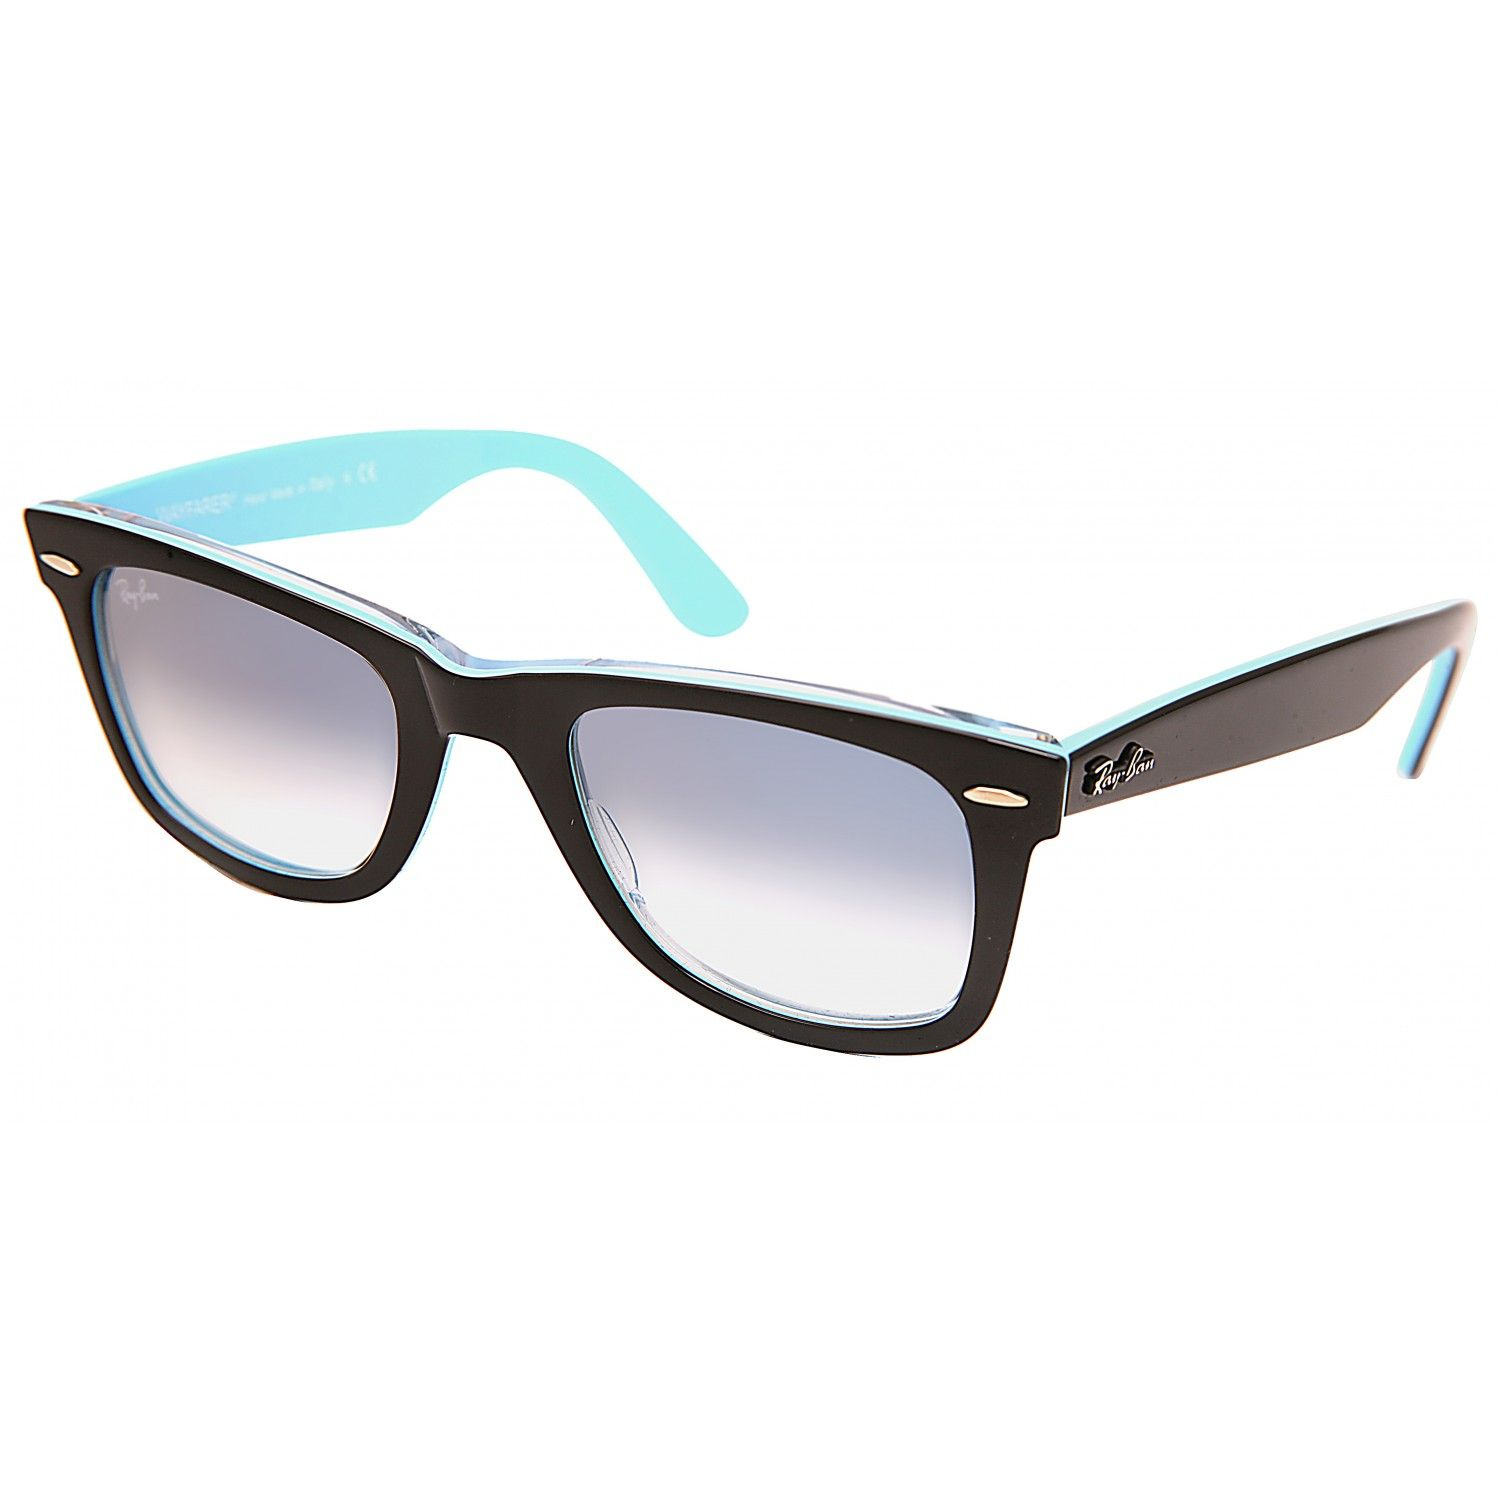 ray ban wayfarer sunglasses online shopping